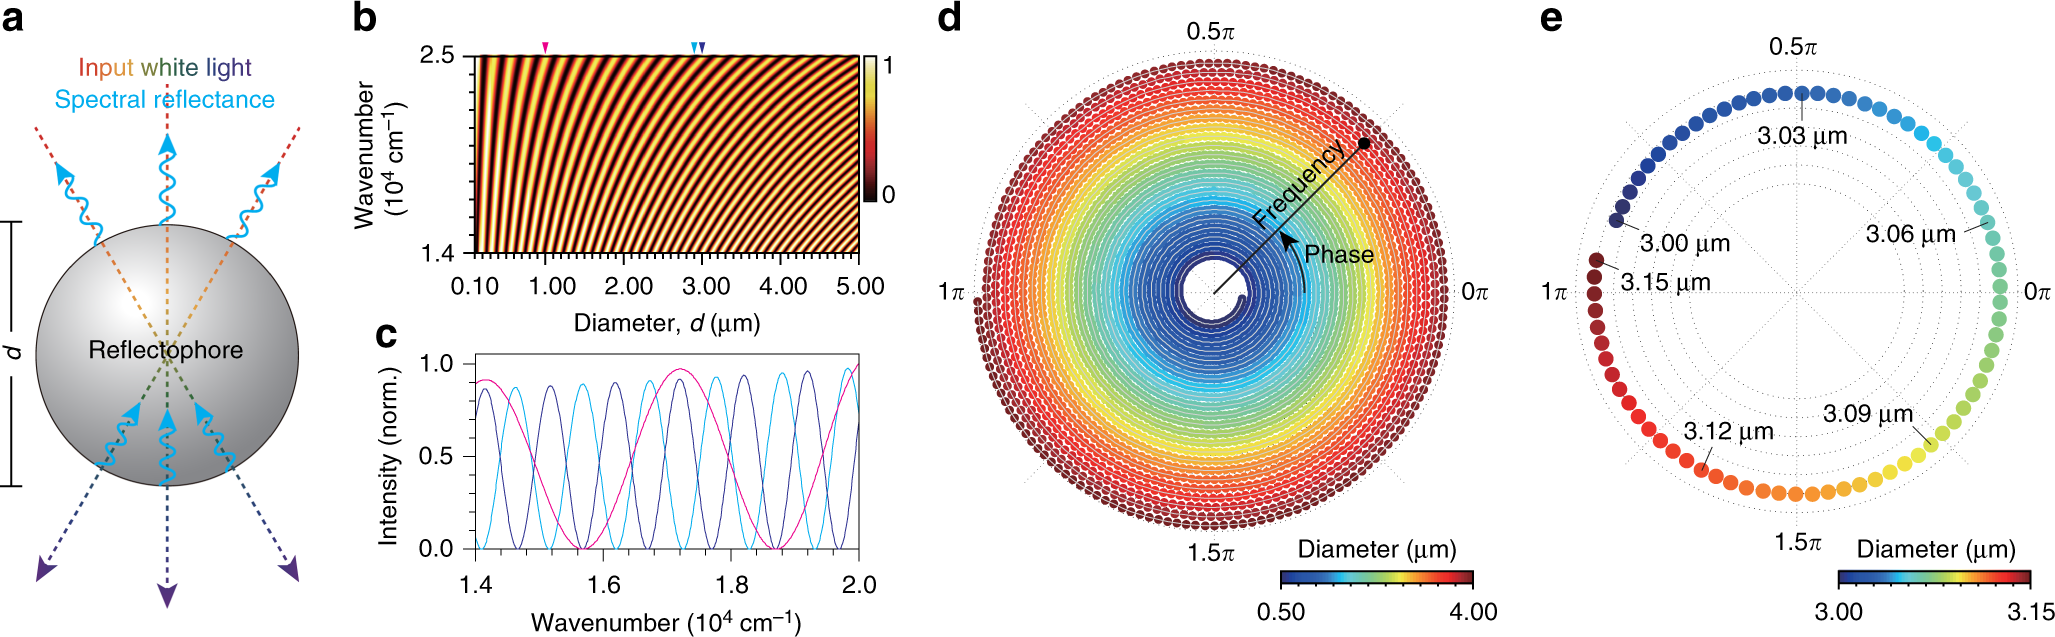 Microsphere-based interferometric optical probe | Nature